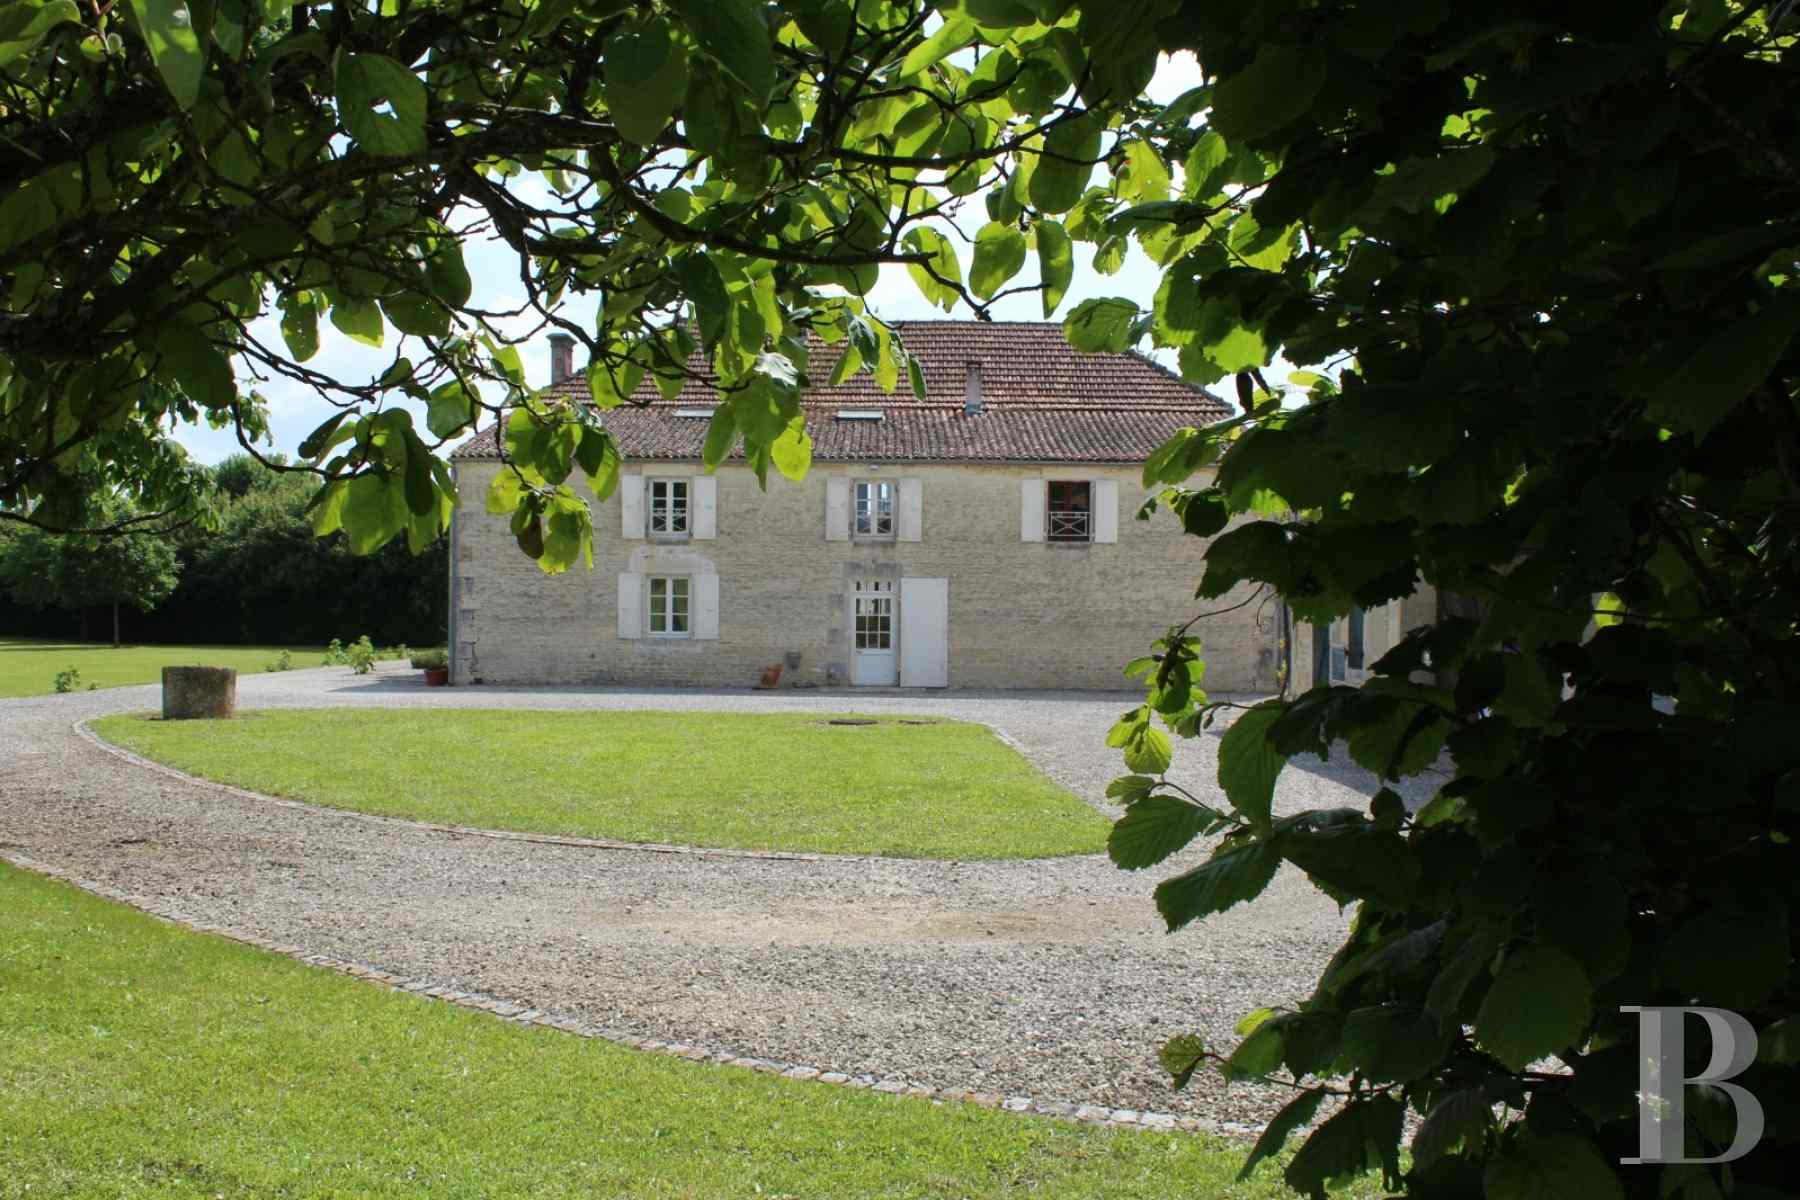 french farms for sale poitou charentes 19th century - 2 zoom